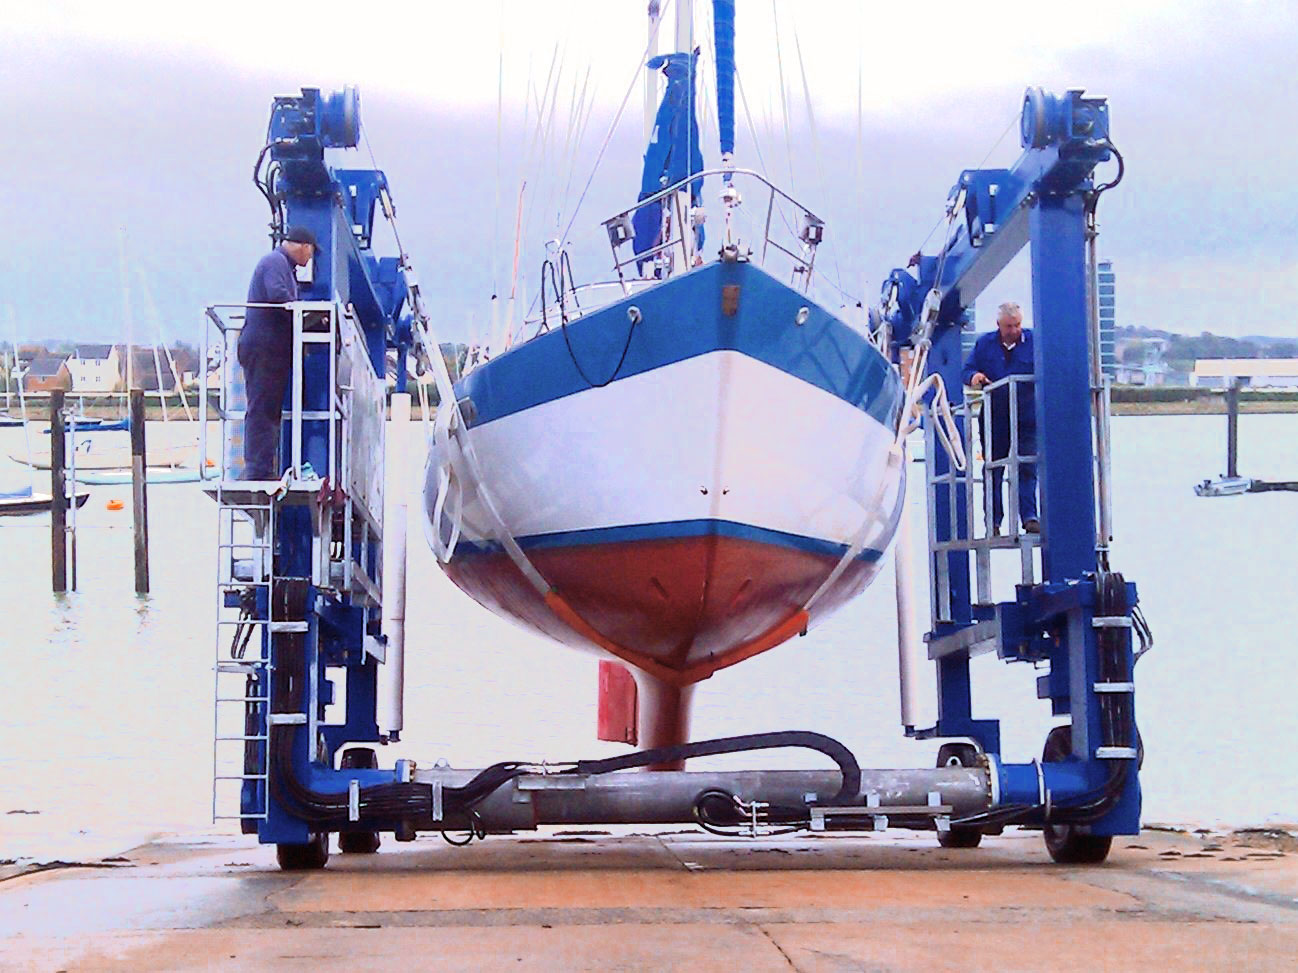 Slipway Hoists Self Powered For Increased Efficiency And